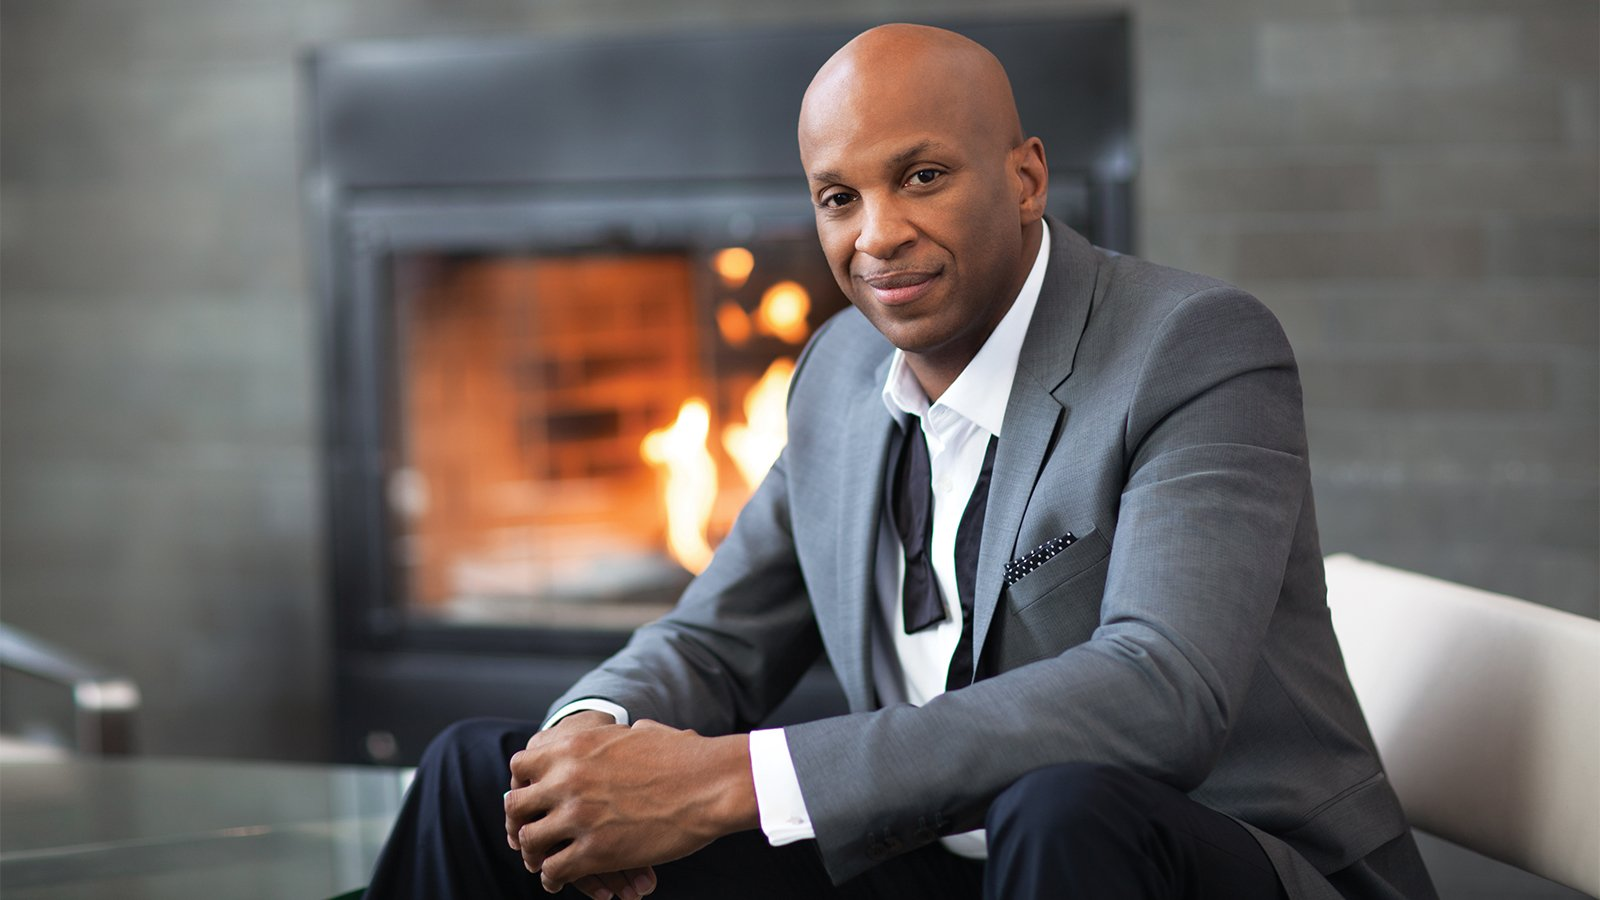 Donnie McClurkin Says He'll 'Probably be Alone for the Rest of My Life' Due to His Struggles With Sexuality